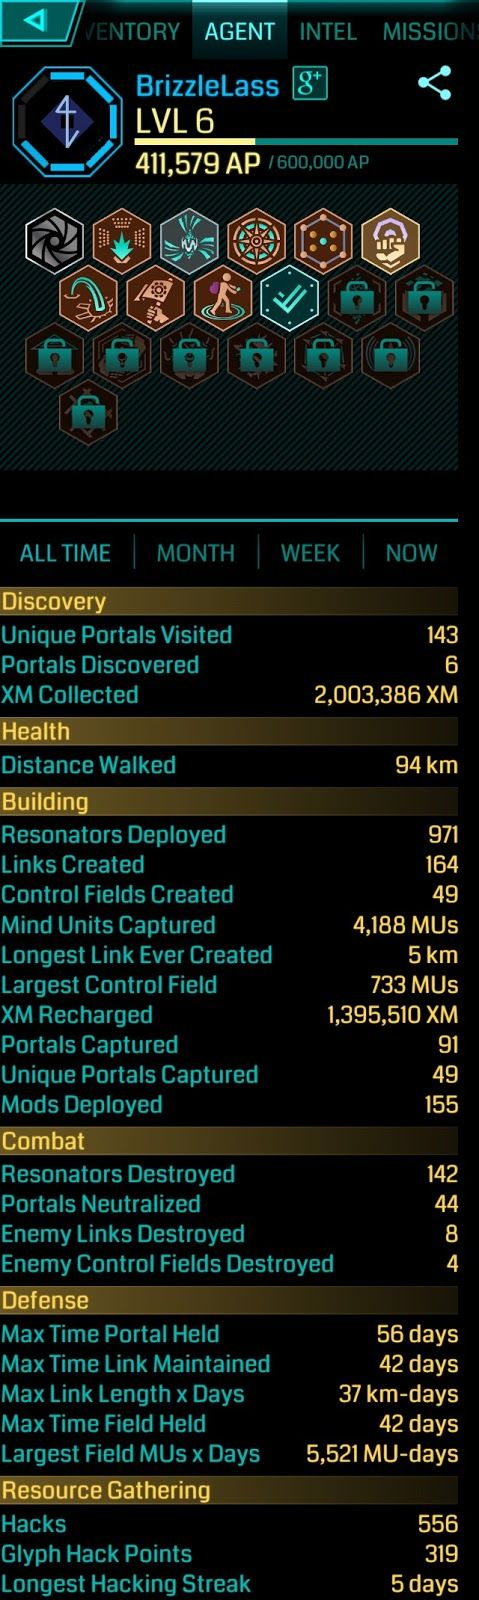 Just What is it About Ingress? | BrizzleLass